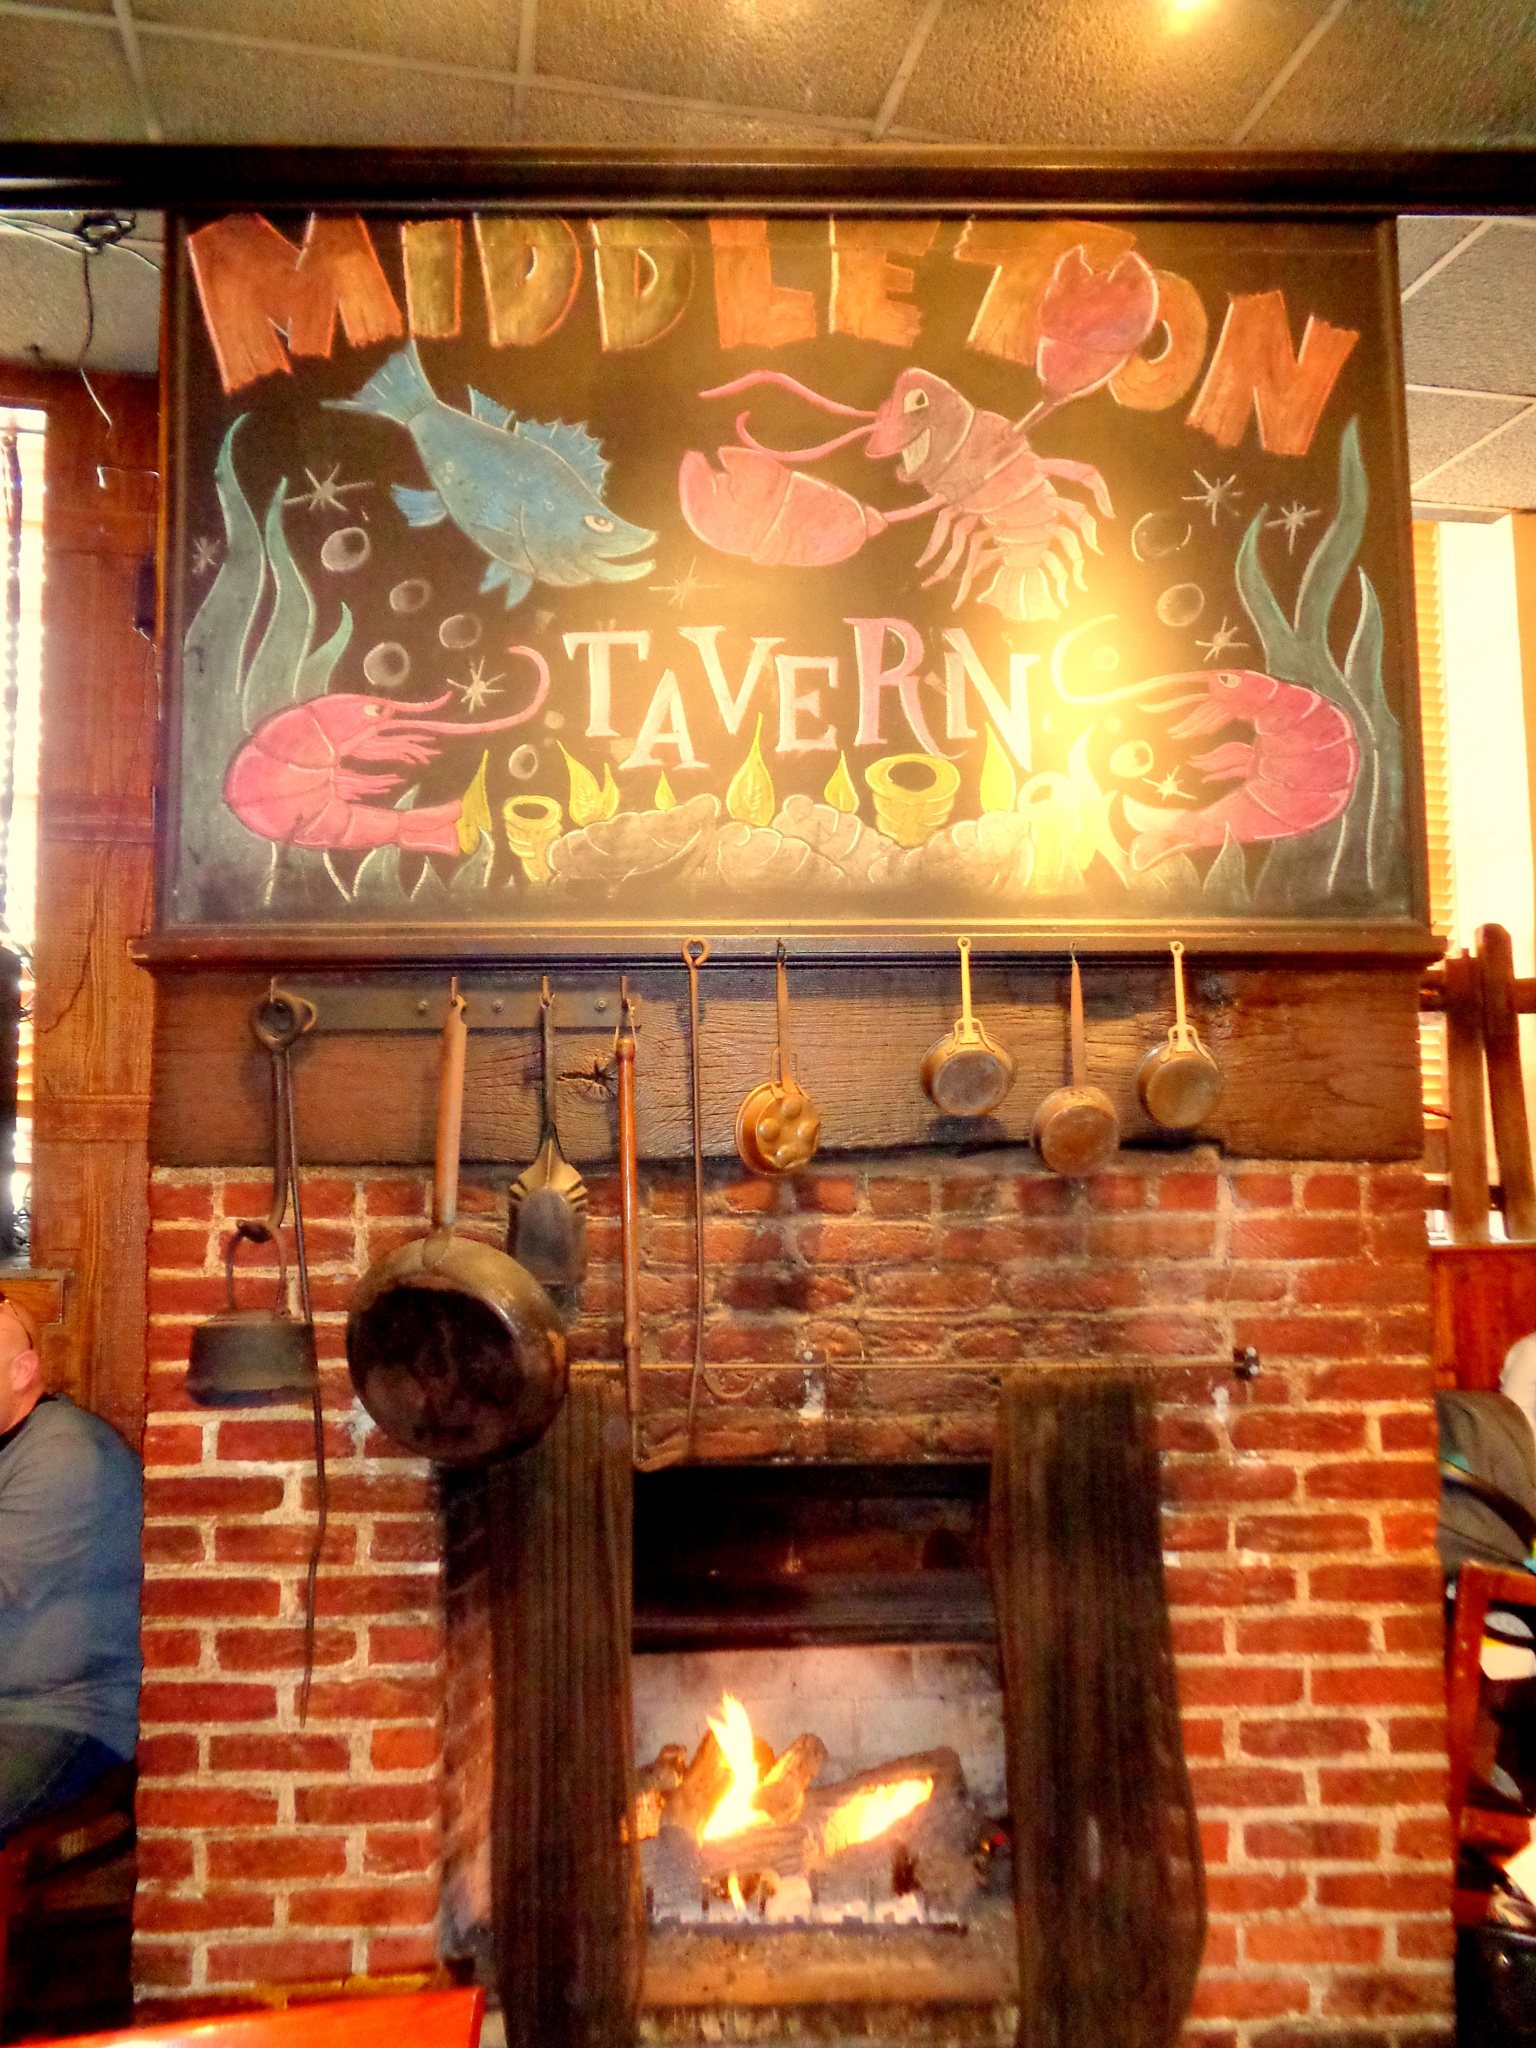 Middleton Tavern, Annapolis, MD on March 26, 2016 by NatalyaParris